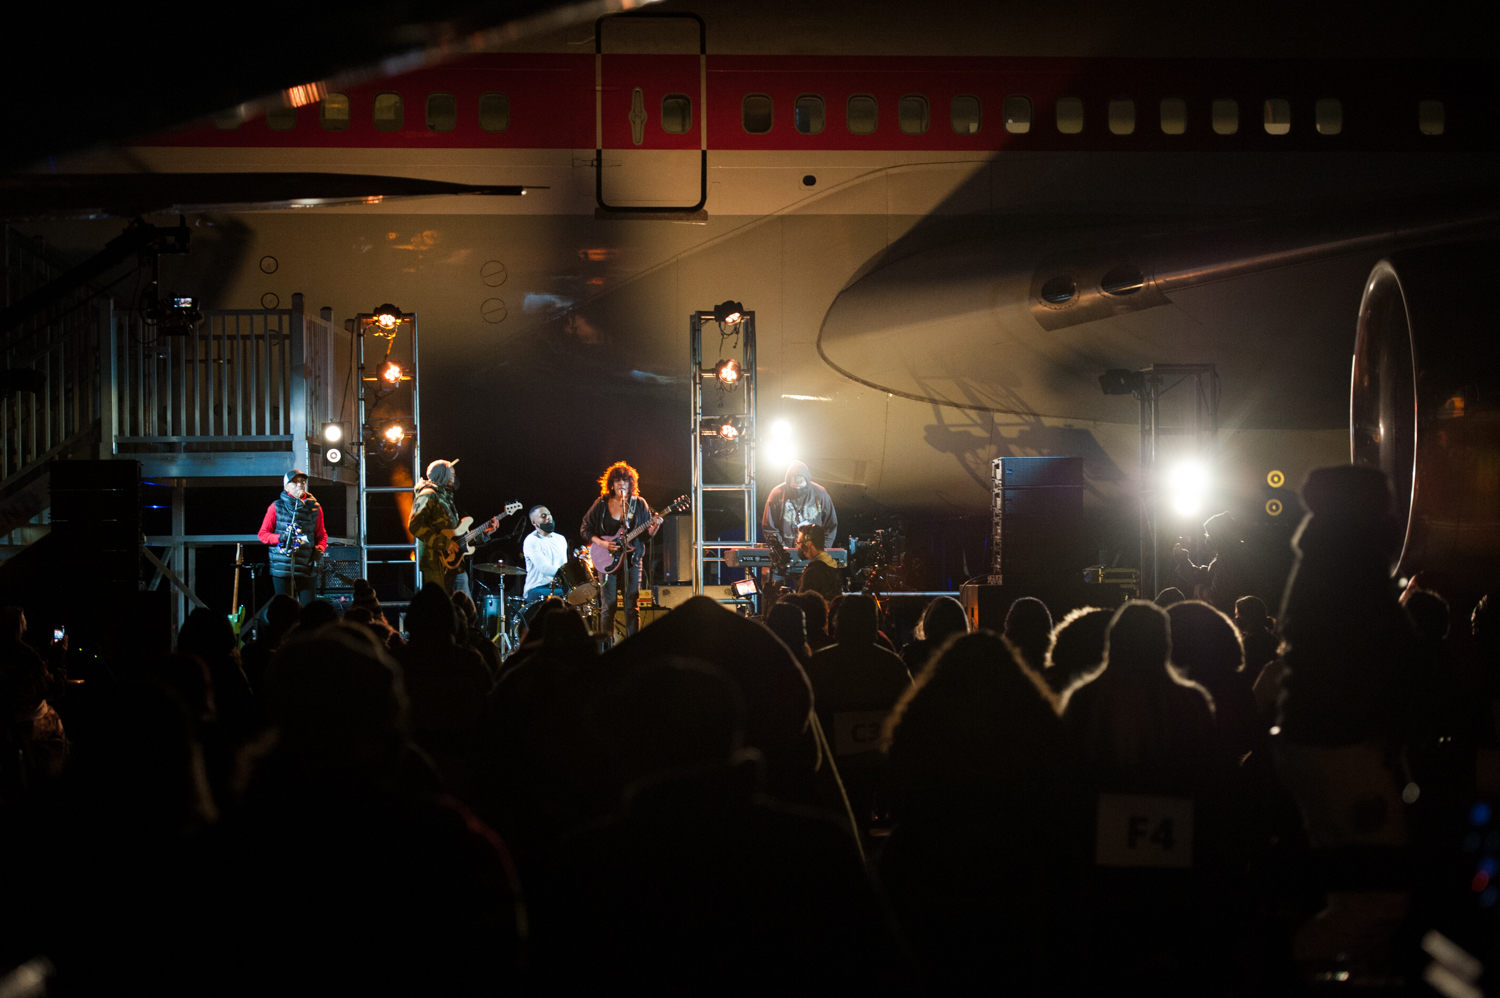 "It was the first socially distant, outdoor concert Seattle has seen - and it sold out! The Black Tones and Payge Turner played to a full, but distanced house, at the Museum of Flight on March 28. This event was hosted by Safe and Sound Seattle, an organization aiming to help venues host COVID-compliant events in an effort to keep them open. They worked closely with{&nbsp;}state and local guidelines to ensure the layout provided coordinated protocol, plenty of space for monitored social distancing, and ease of access. Safe and Sound plans on hosting more concerts in the near future, so if you feel comfortable and are dying for some live music - you can find more info{&nbsp;}<a  href=""https://www.safesoundseattle.org/mission-statement"" target=""_blank"" title=""https://www.safesoundseattle.org/mission-statement"">online</a>. (Image: Elizabeth Crook / Seattle Refined)"